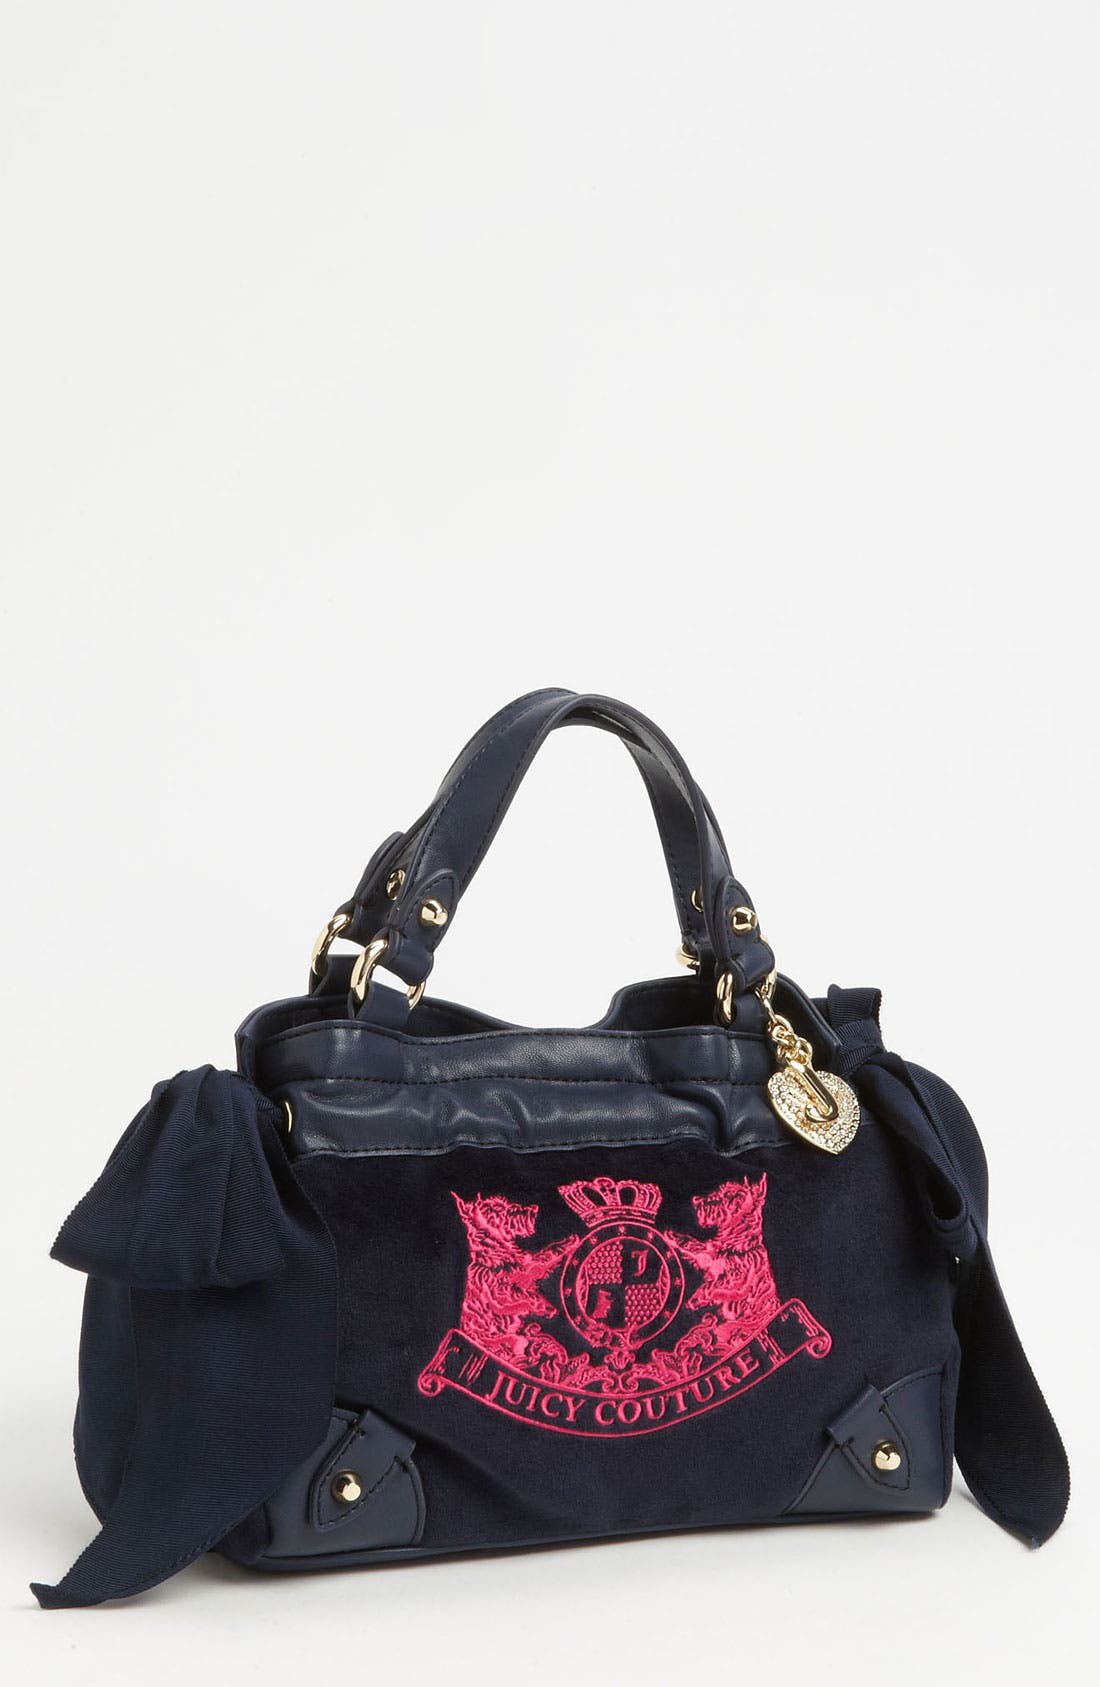 Alternate Image 1 Selected - Juicy Couture 'Daydreamer' Tote (Girls)